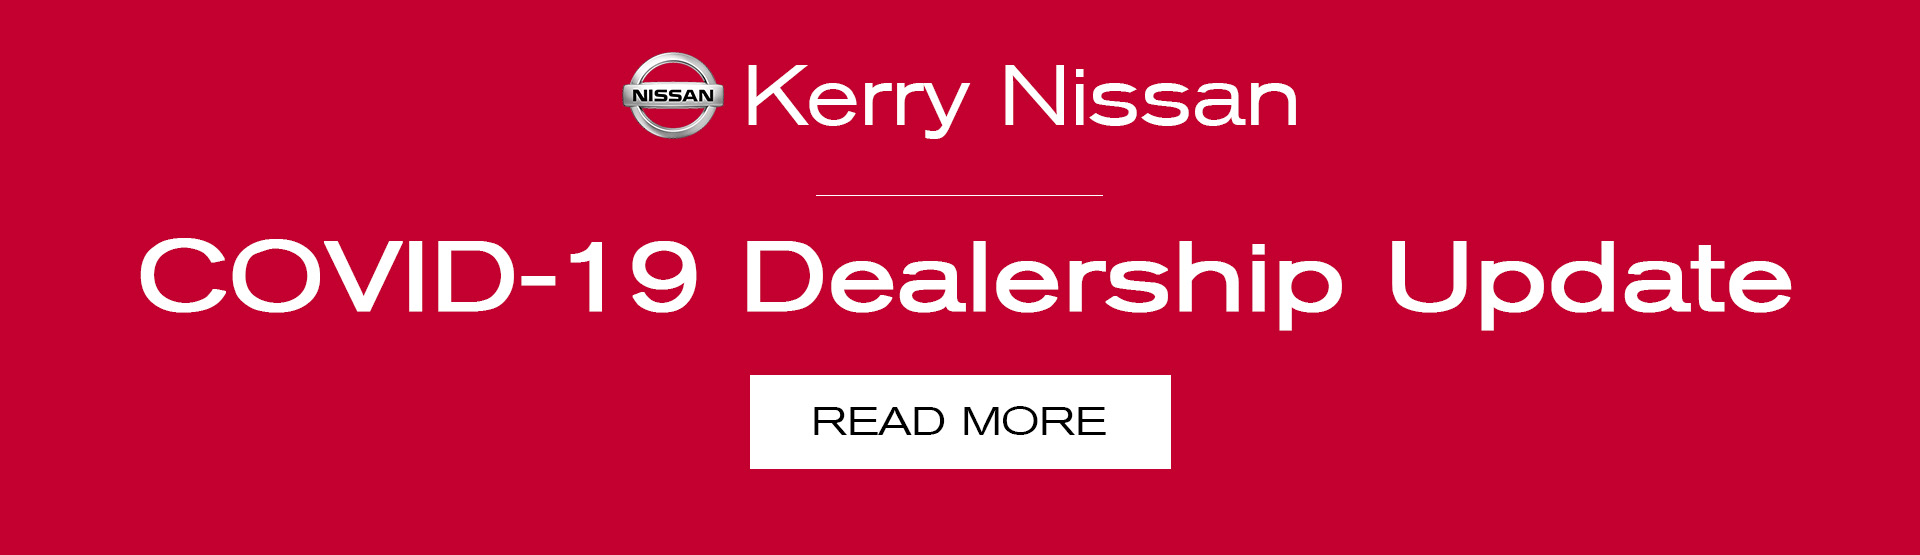 Kerry Nissan COVID19 Statement